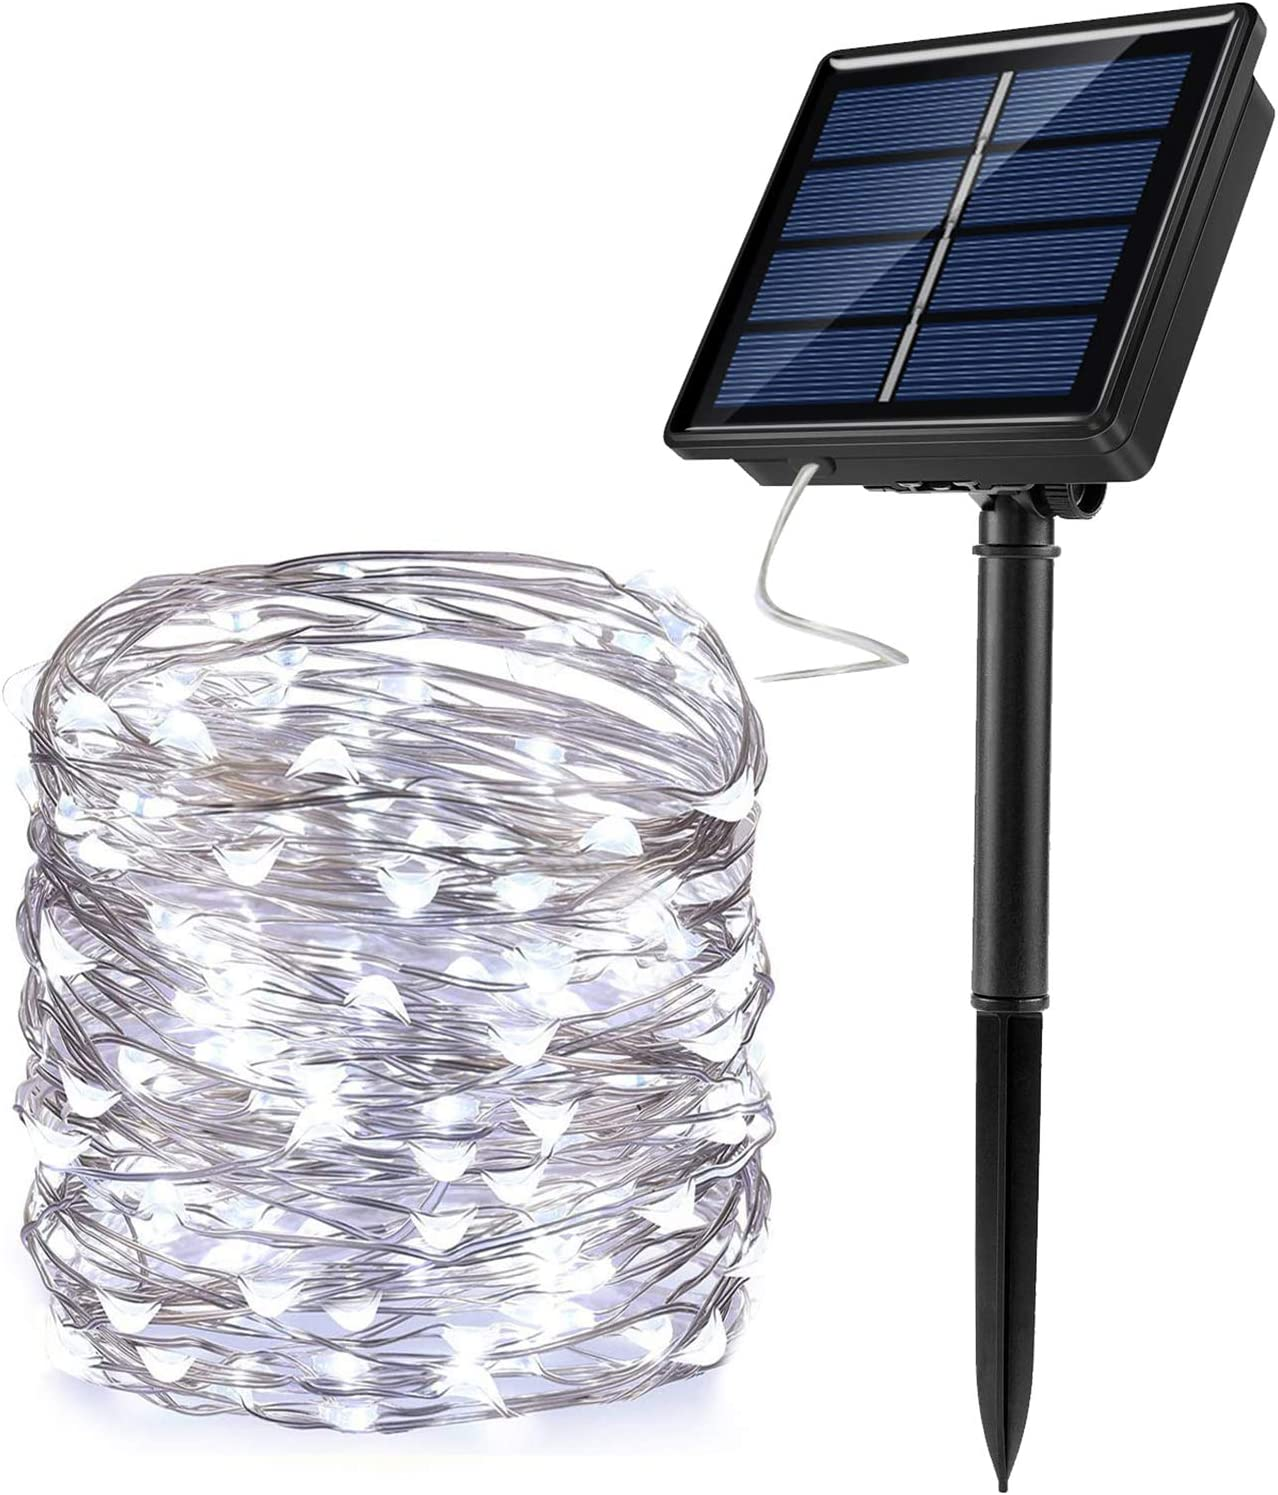 JosMega Upgraded Solar Powered String Fairy Lights 1 Pack 33 ft 100 LED 8 Modes Waterproof IP65 Twinkle Lighting Indoor Outdoor Fairy Firefly Lights Auto ON/Off (1 Pack 33 ft 100 LED, White)